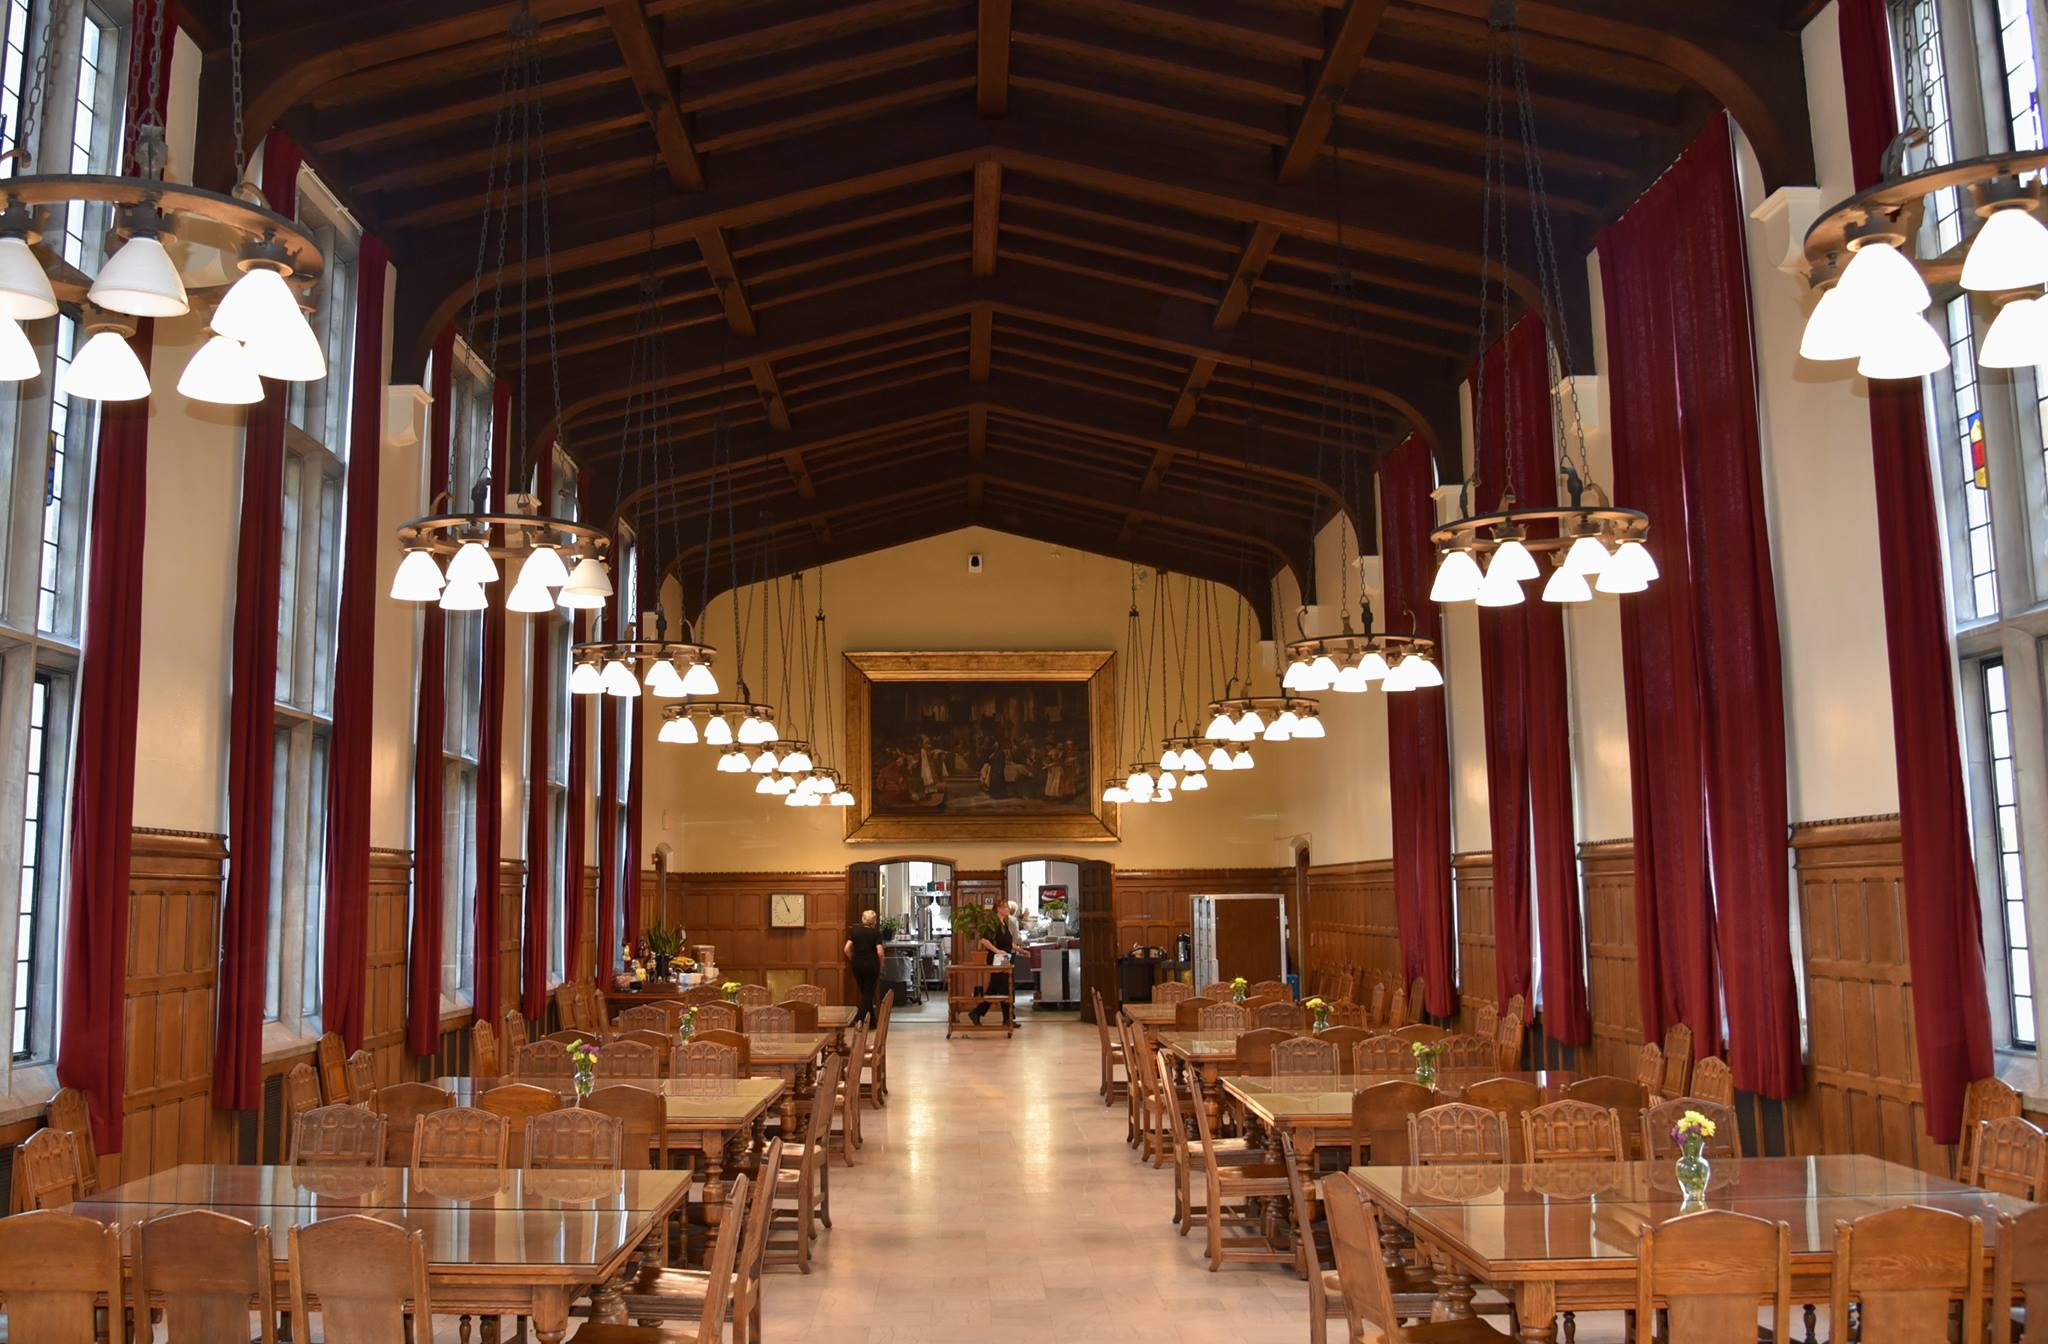 long room with wooden tables and chairs, high ceilings, and red curtains